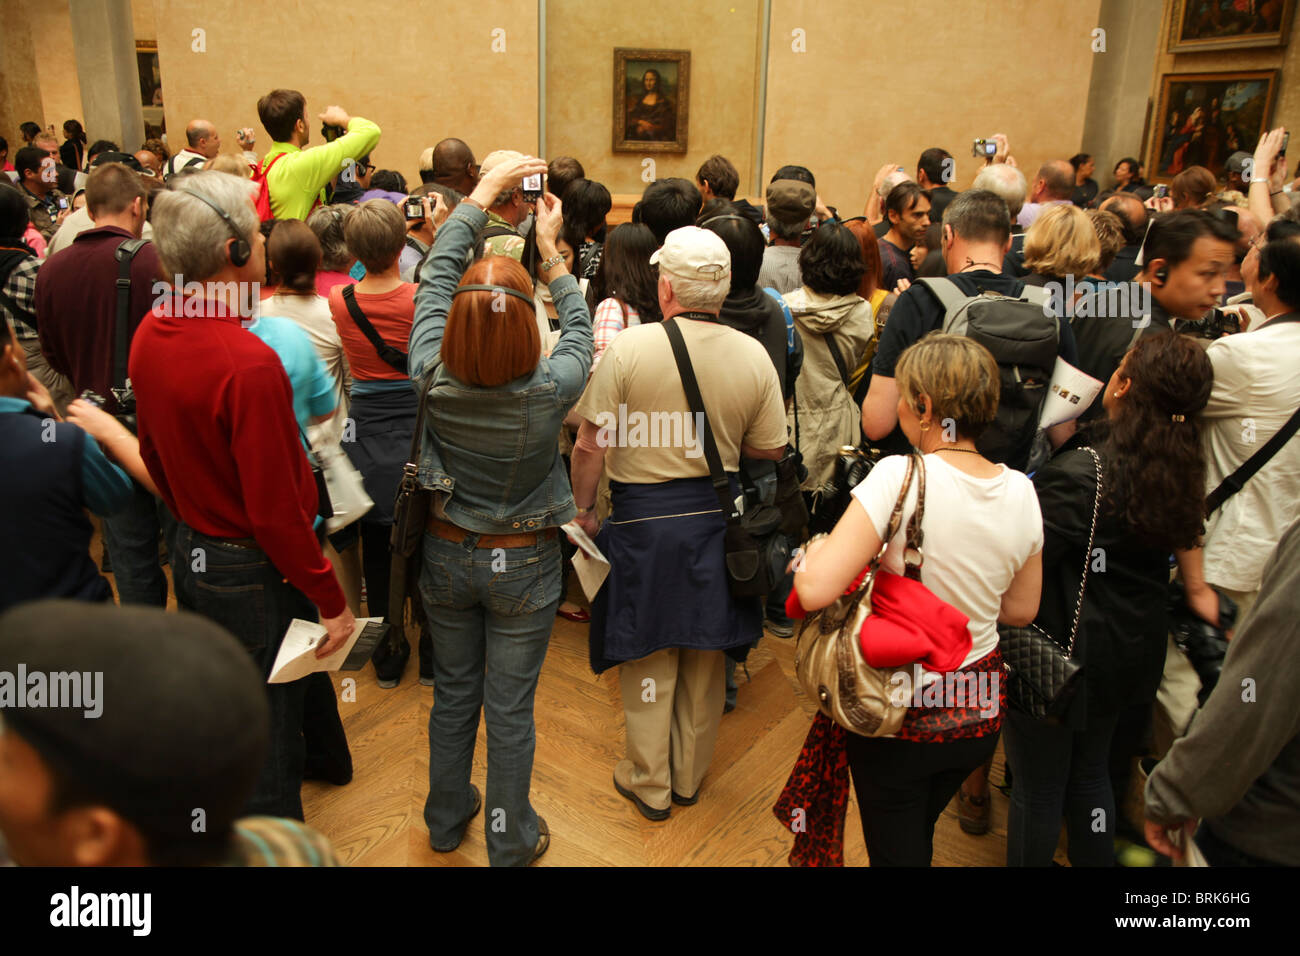 LOUVRE, PARIS, FRANCE-SEPTEMBER 20TH 2010: visitors trying to look at the Mona Lisa in the Louvre museum in Paris - Stock Image